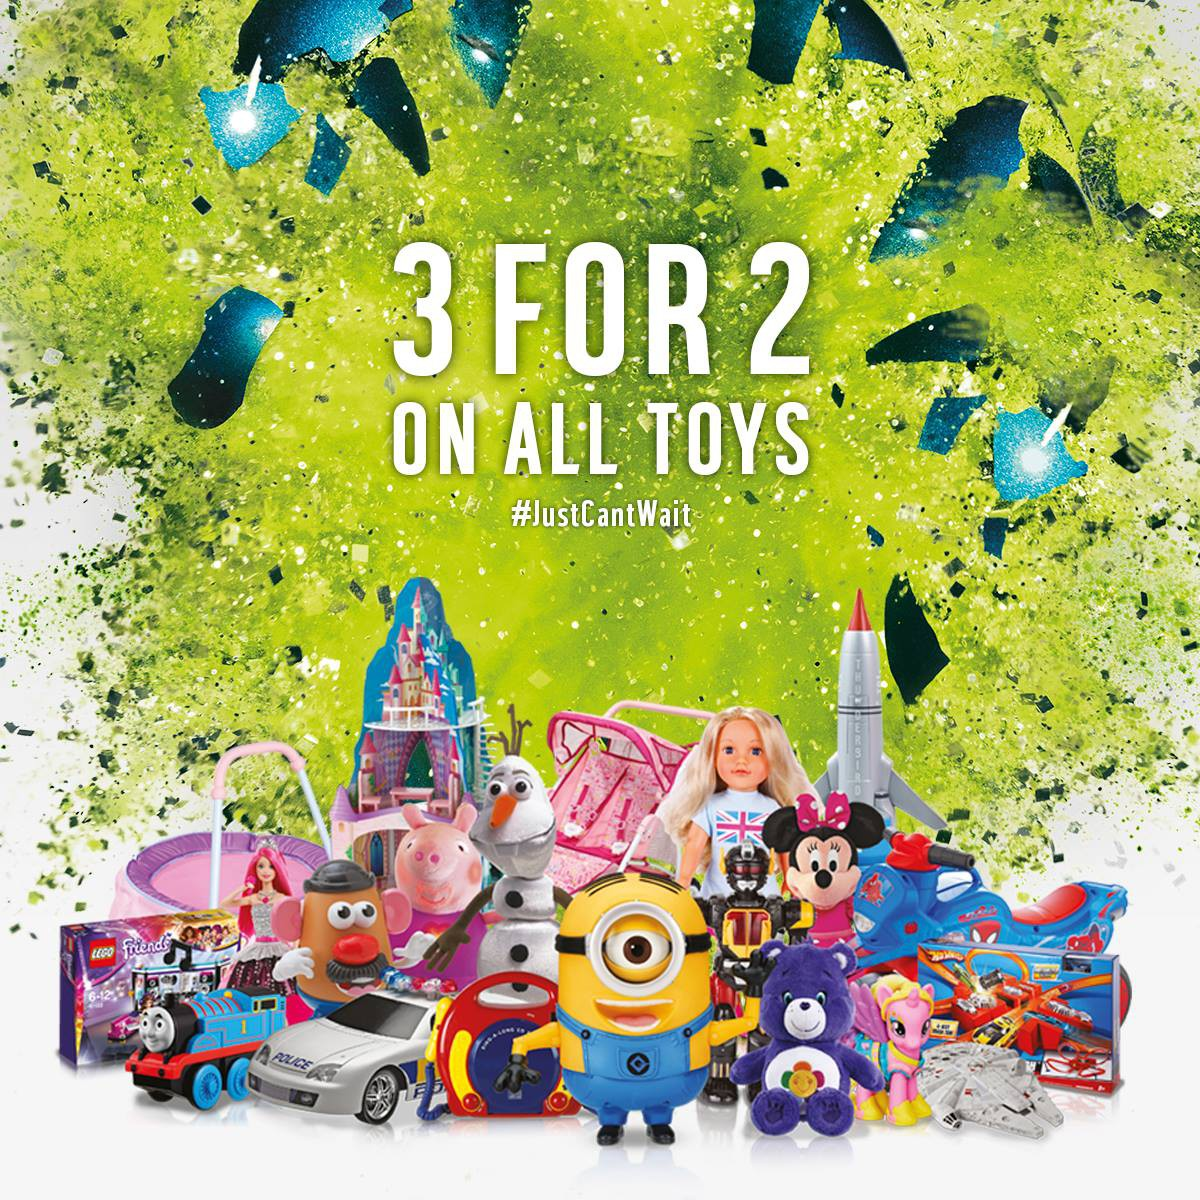 Toys R Us Deals - WannaBuyGoAmazing Deals Everyday· Best Deals Today 70% Off· New Deals Of The DayTypes: Grocery Stores, Specialty Stores, Factory Outlets, Retail Chains, Restaurants.